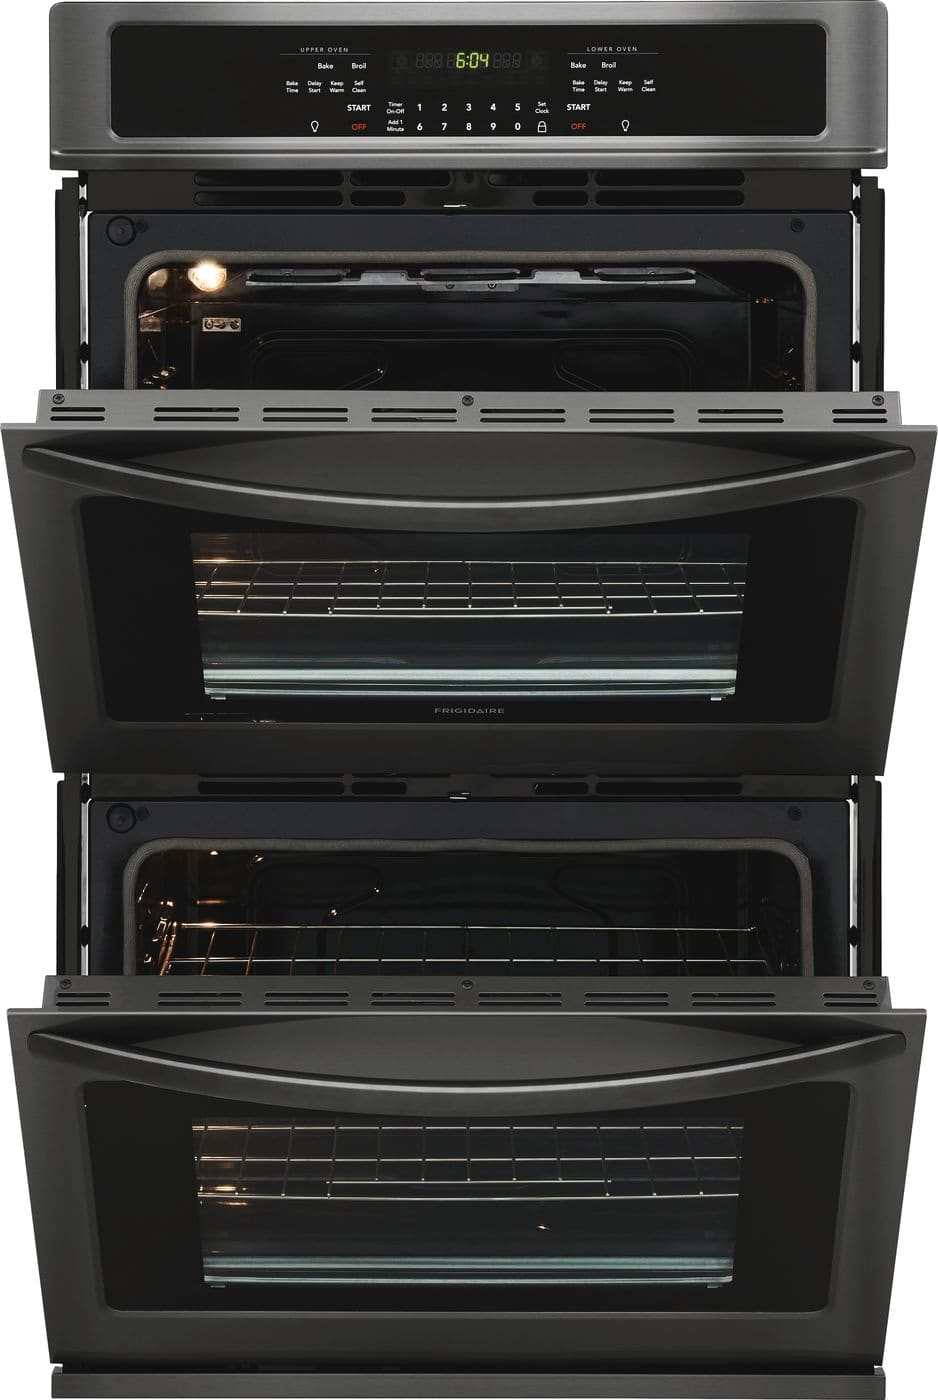 "Model: FFET3026TD | Frigidaire 30"" Double Electric Wall Oven"